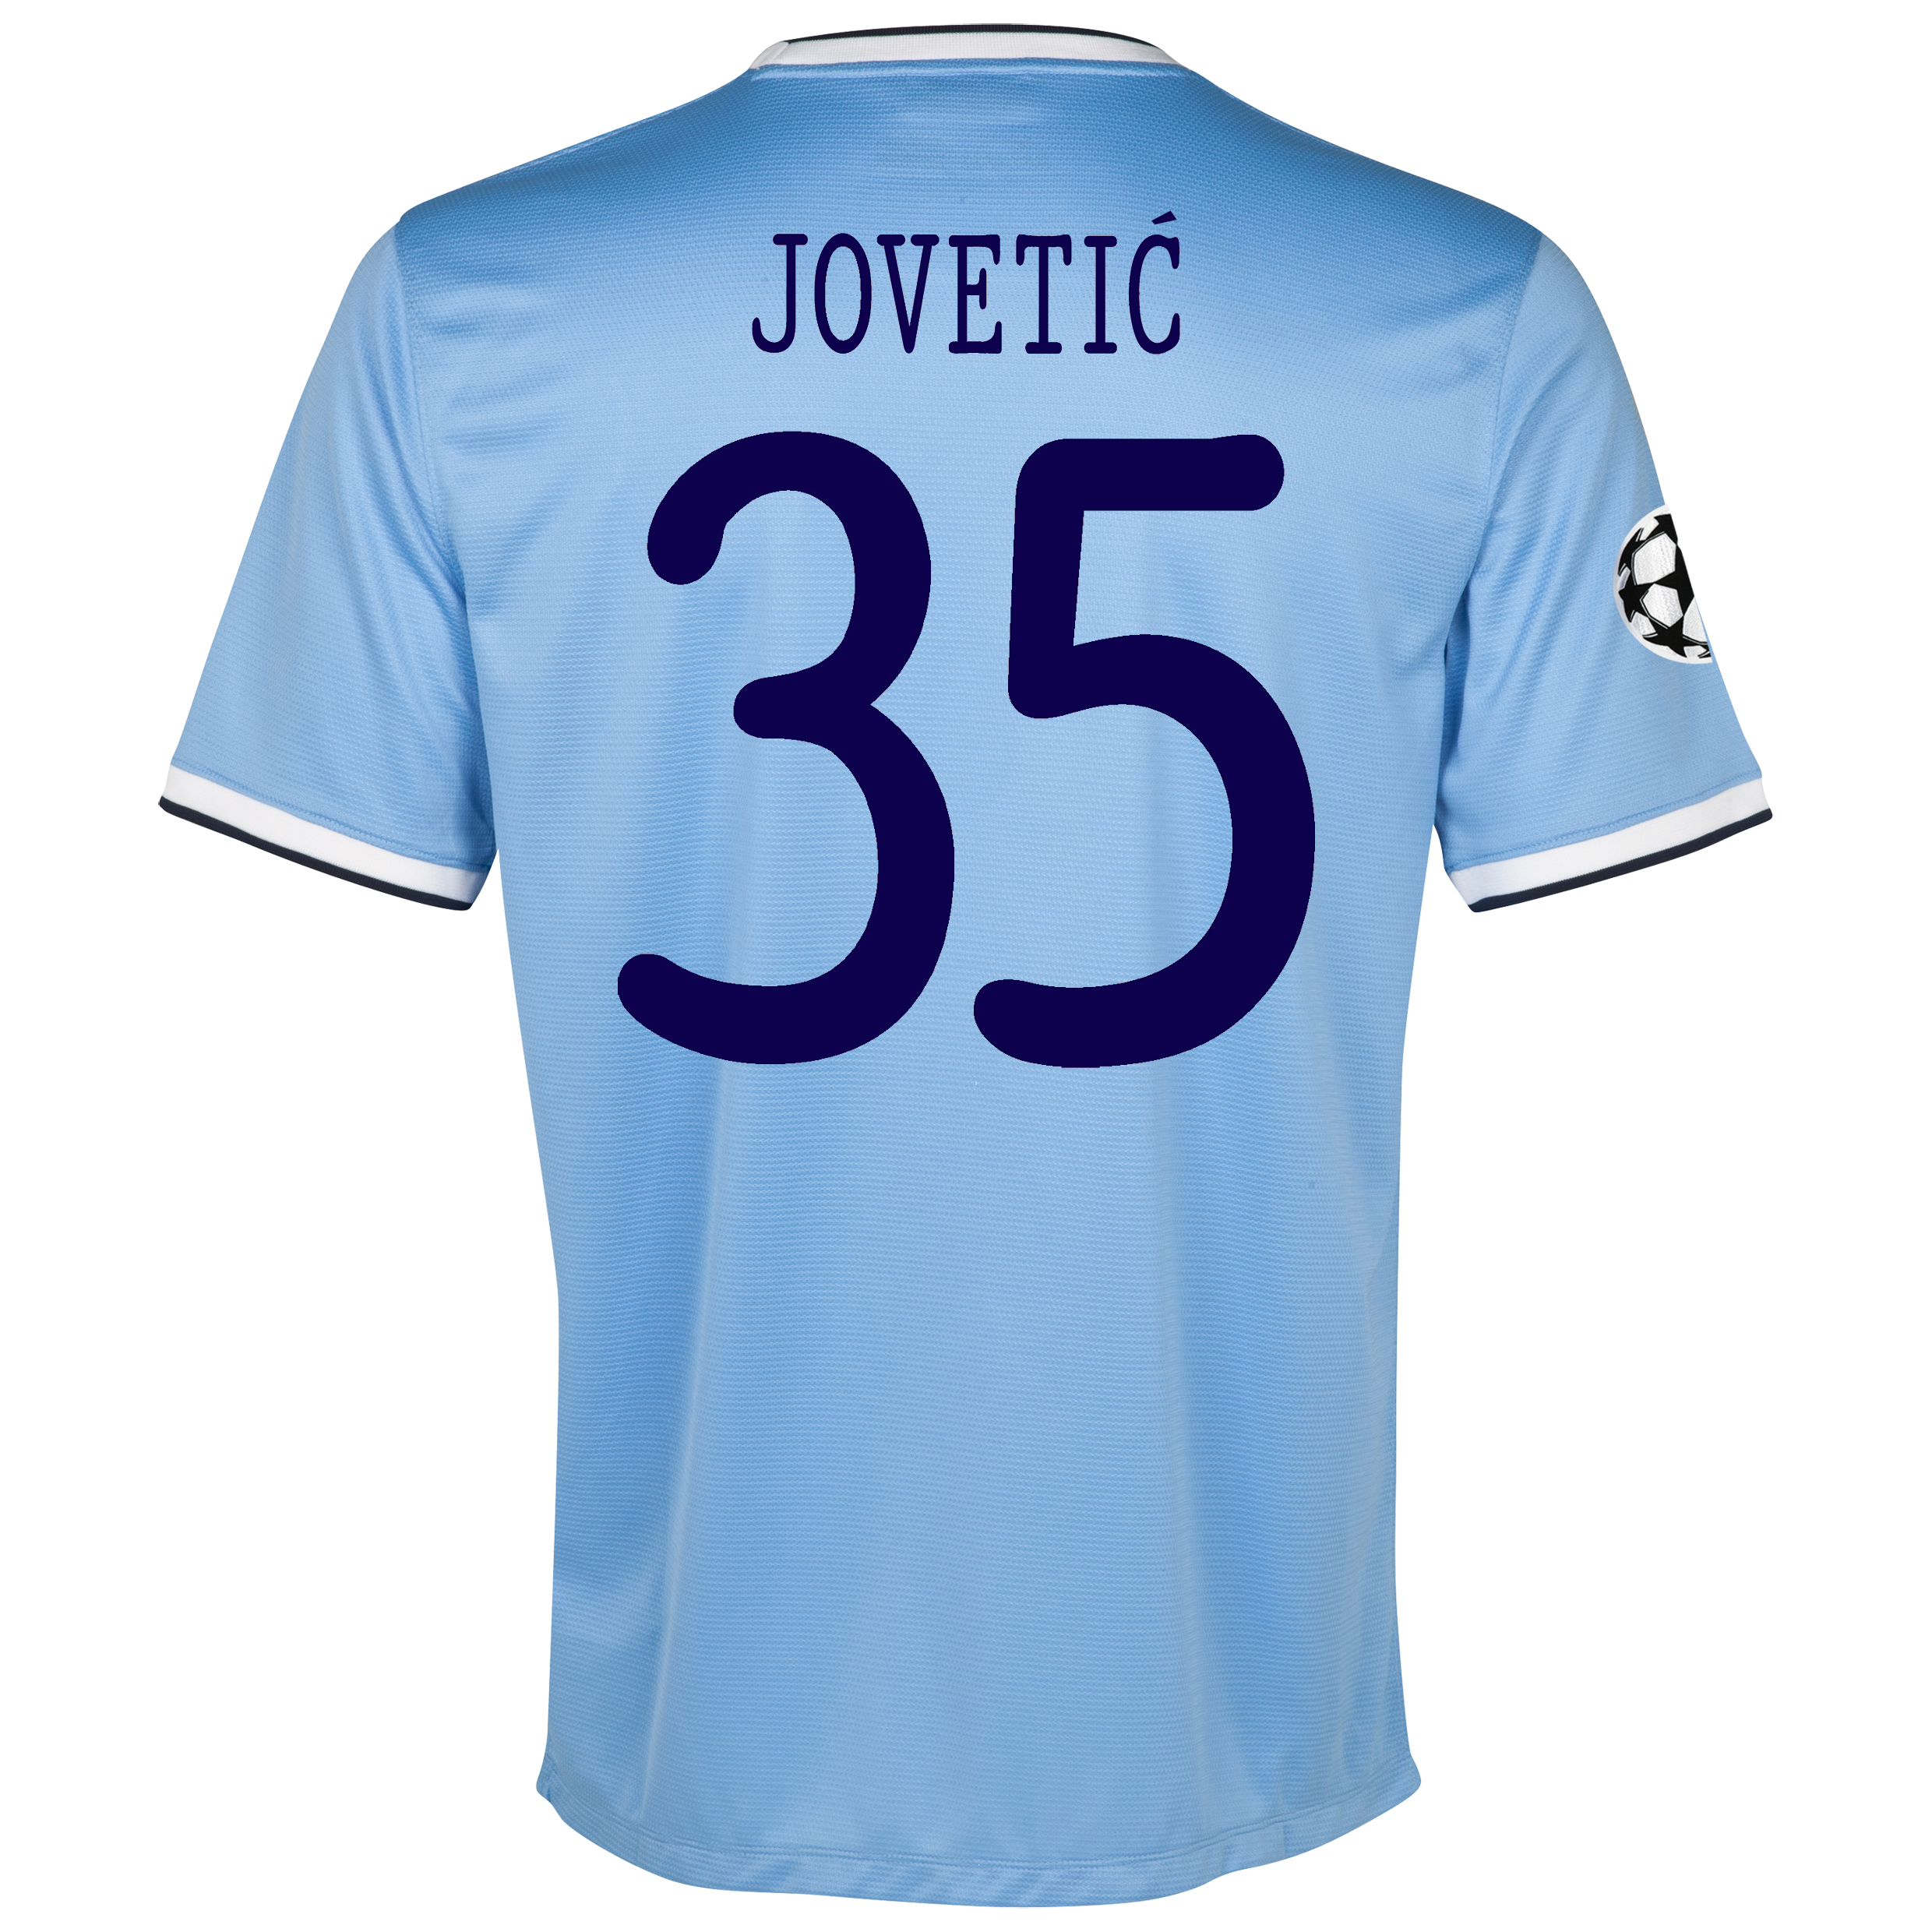 Manchester City UEFA Champions League Home Shirt 2013/14 with Jovetic 35 printing